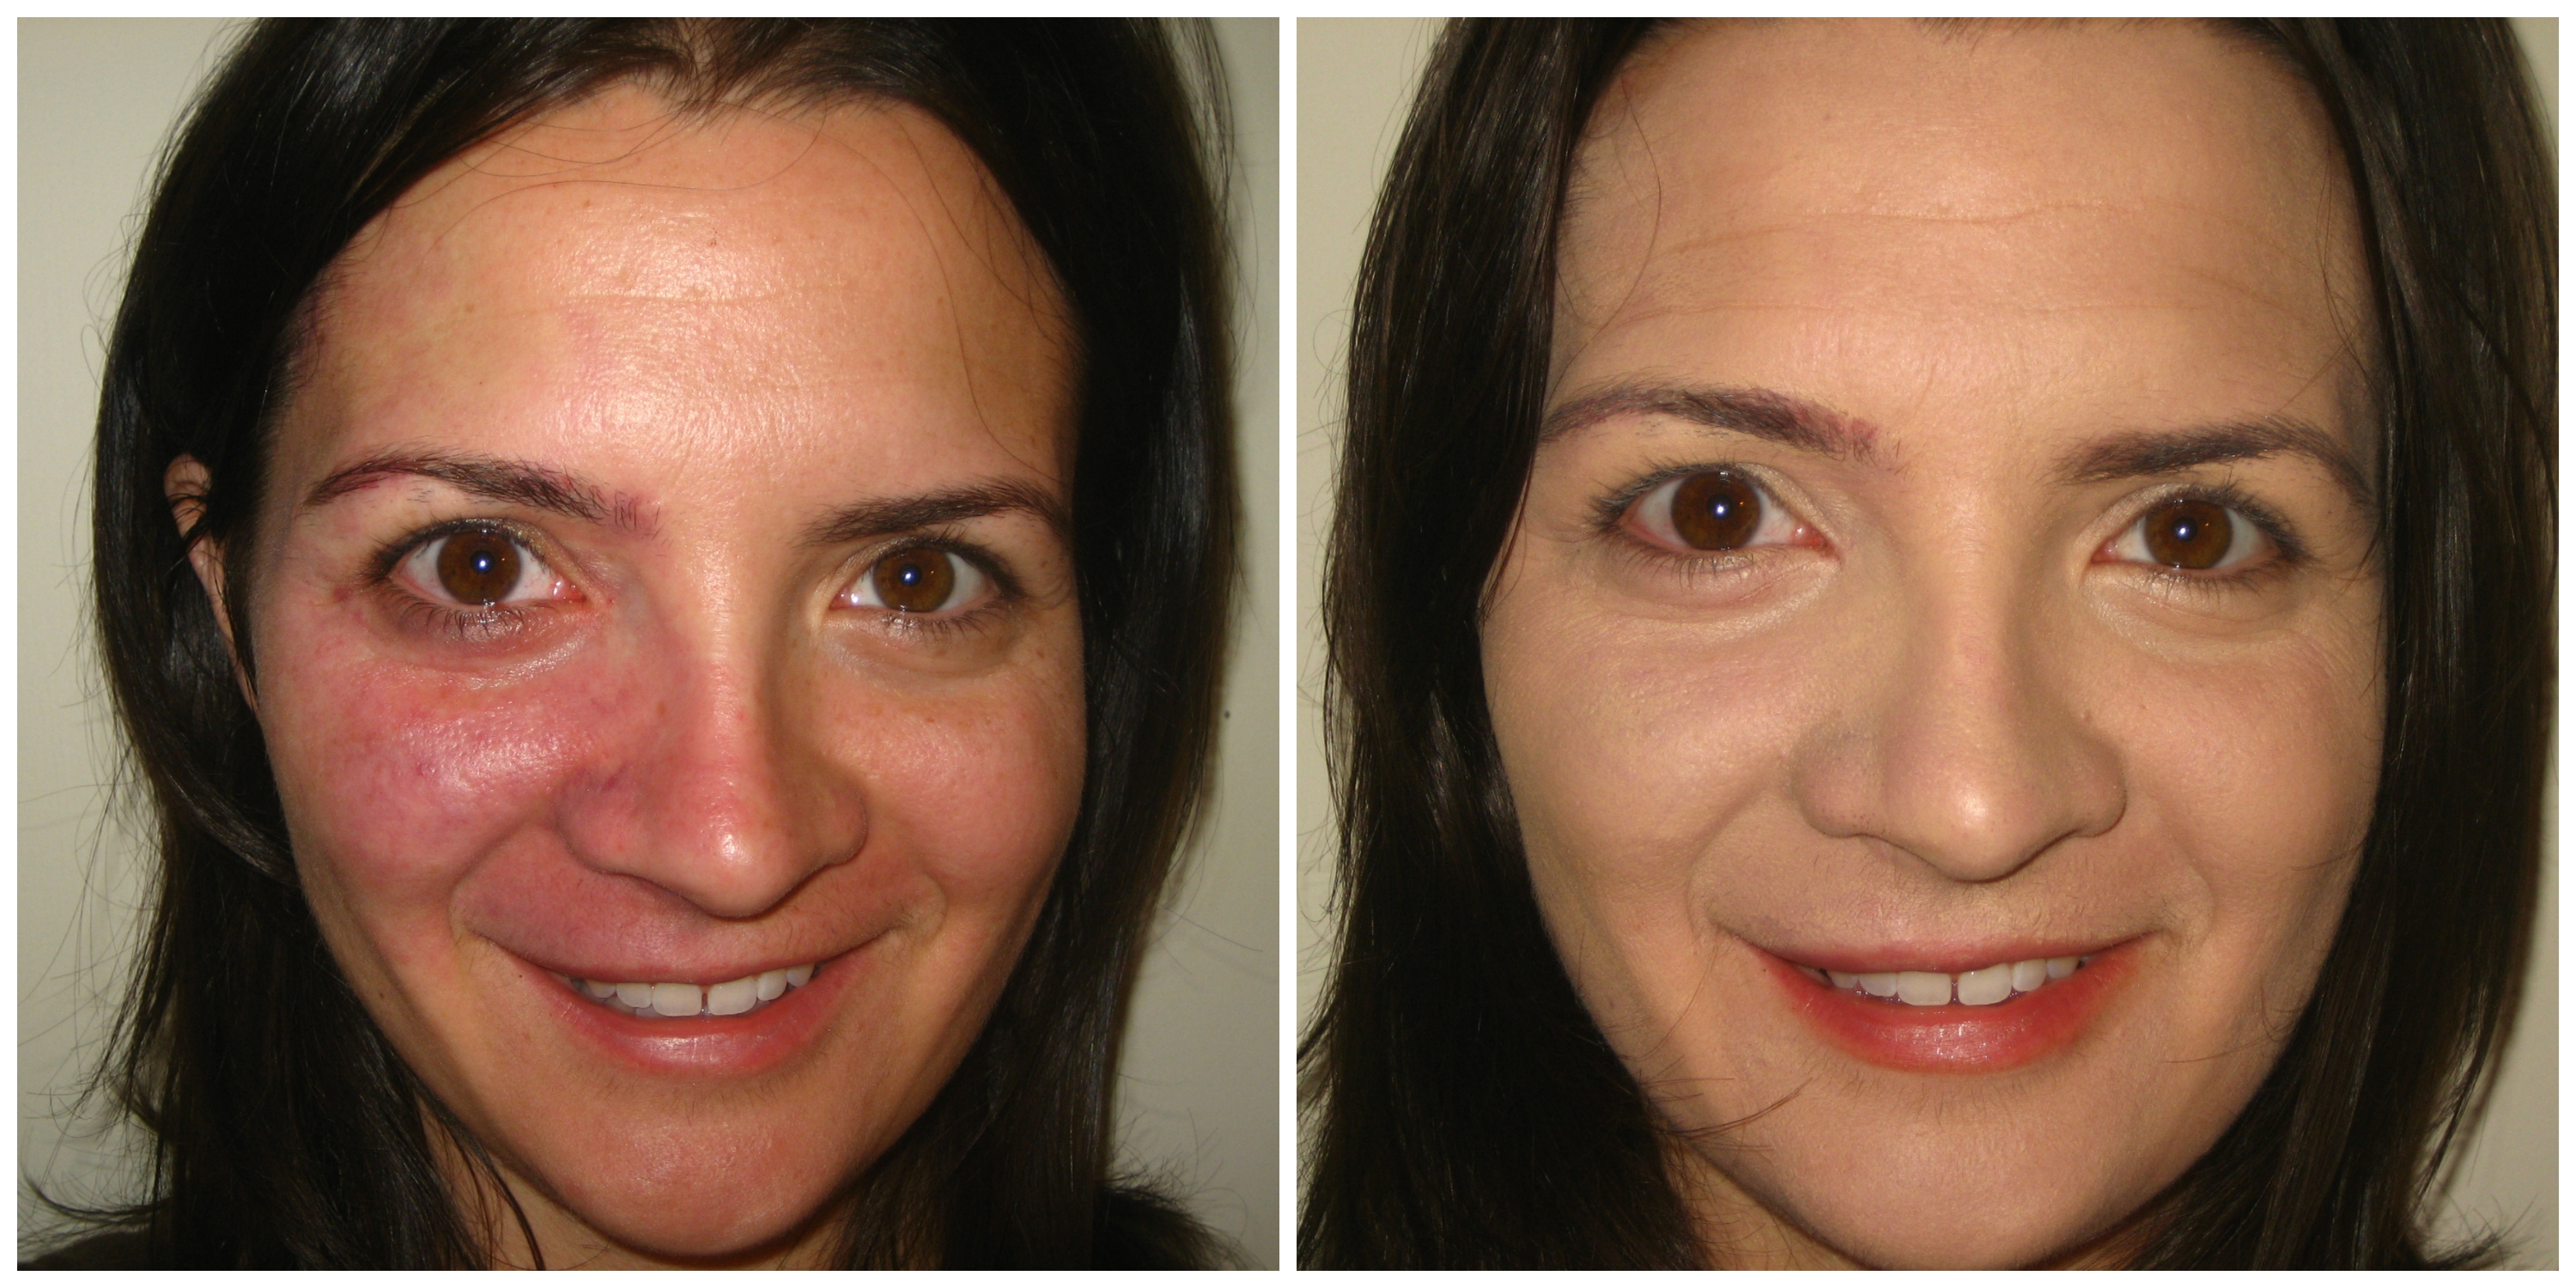 KATE ROSACEA BEFORE AND AFTER